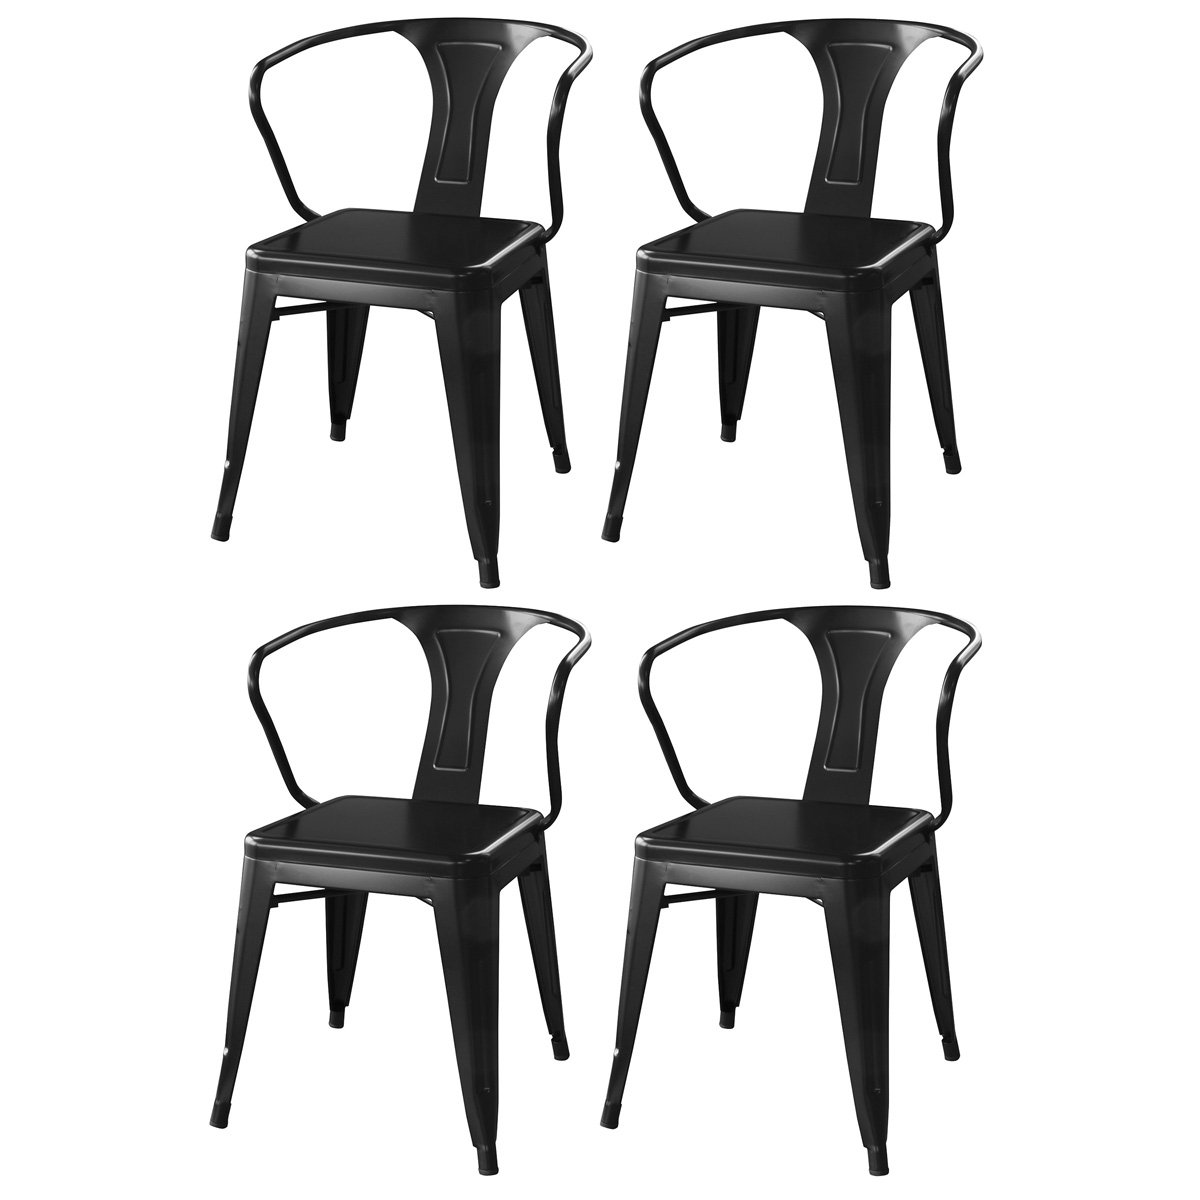 AmeriHome Loft Glossy Black Metal Dining Chairs - 4 Piece